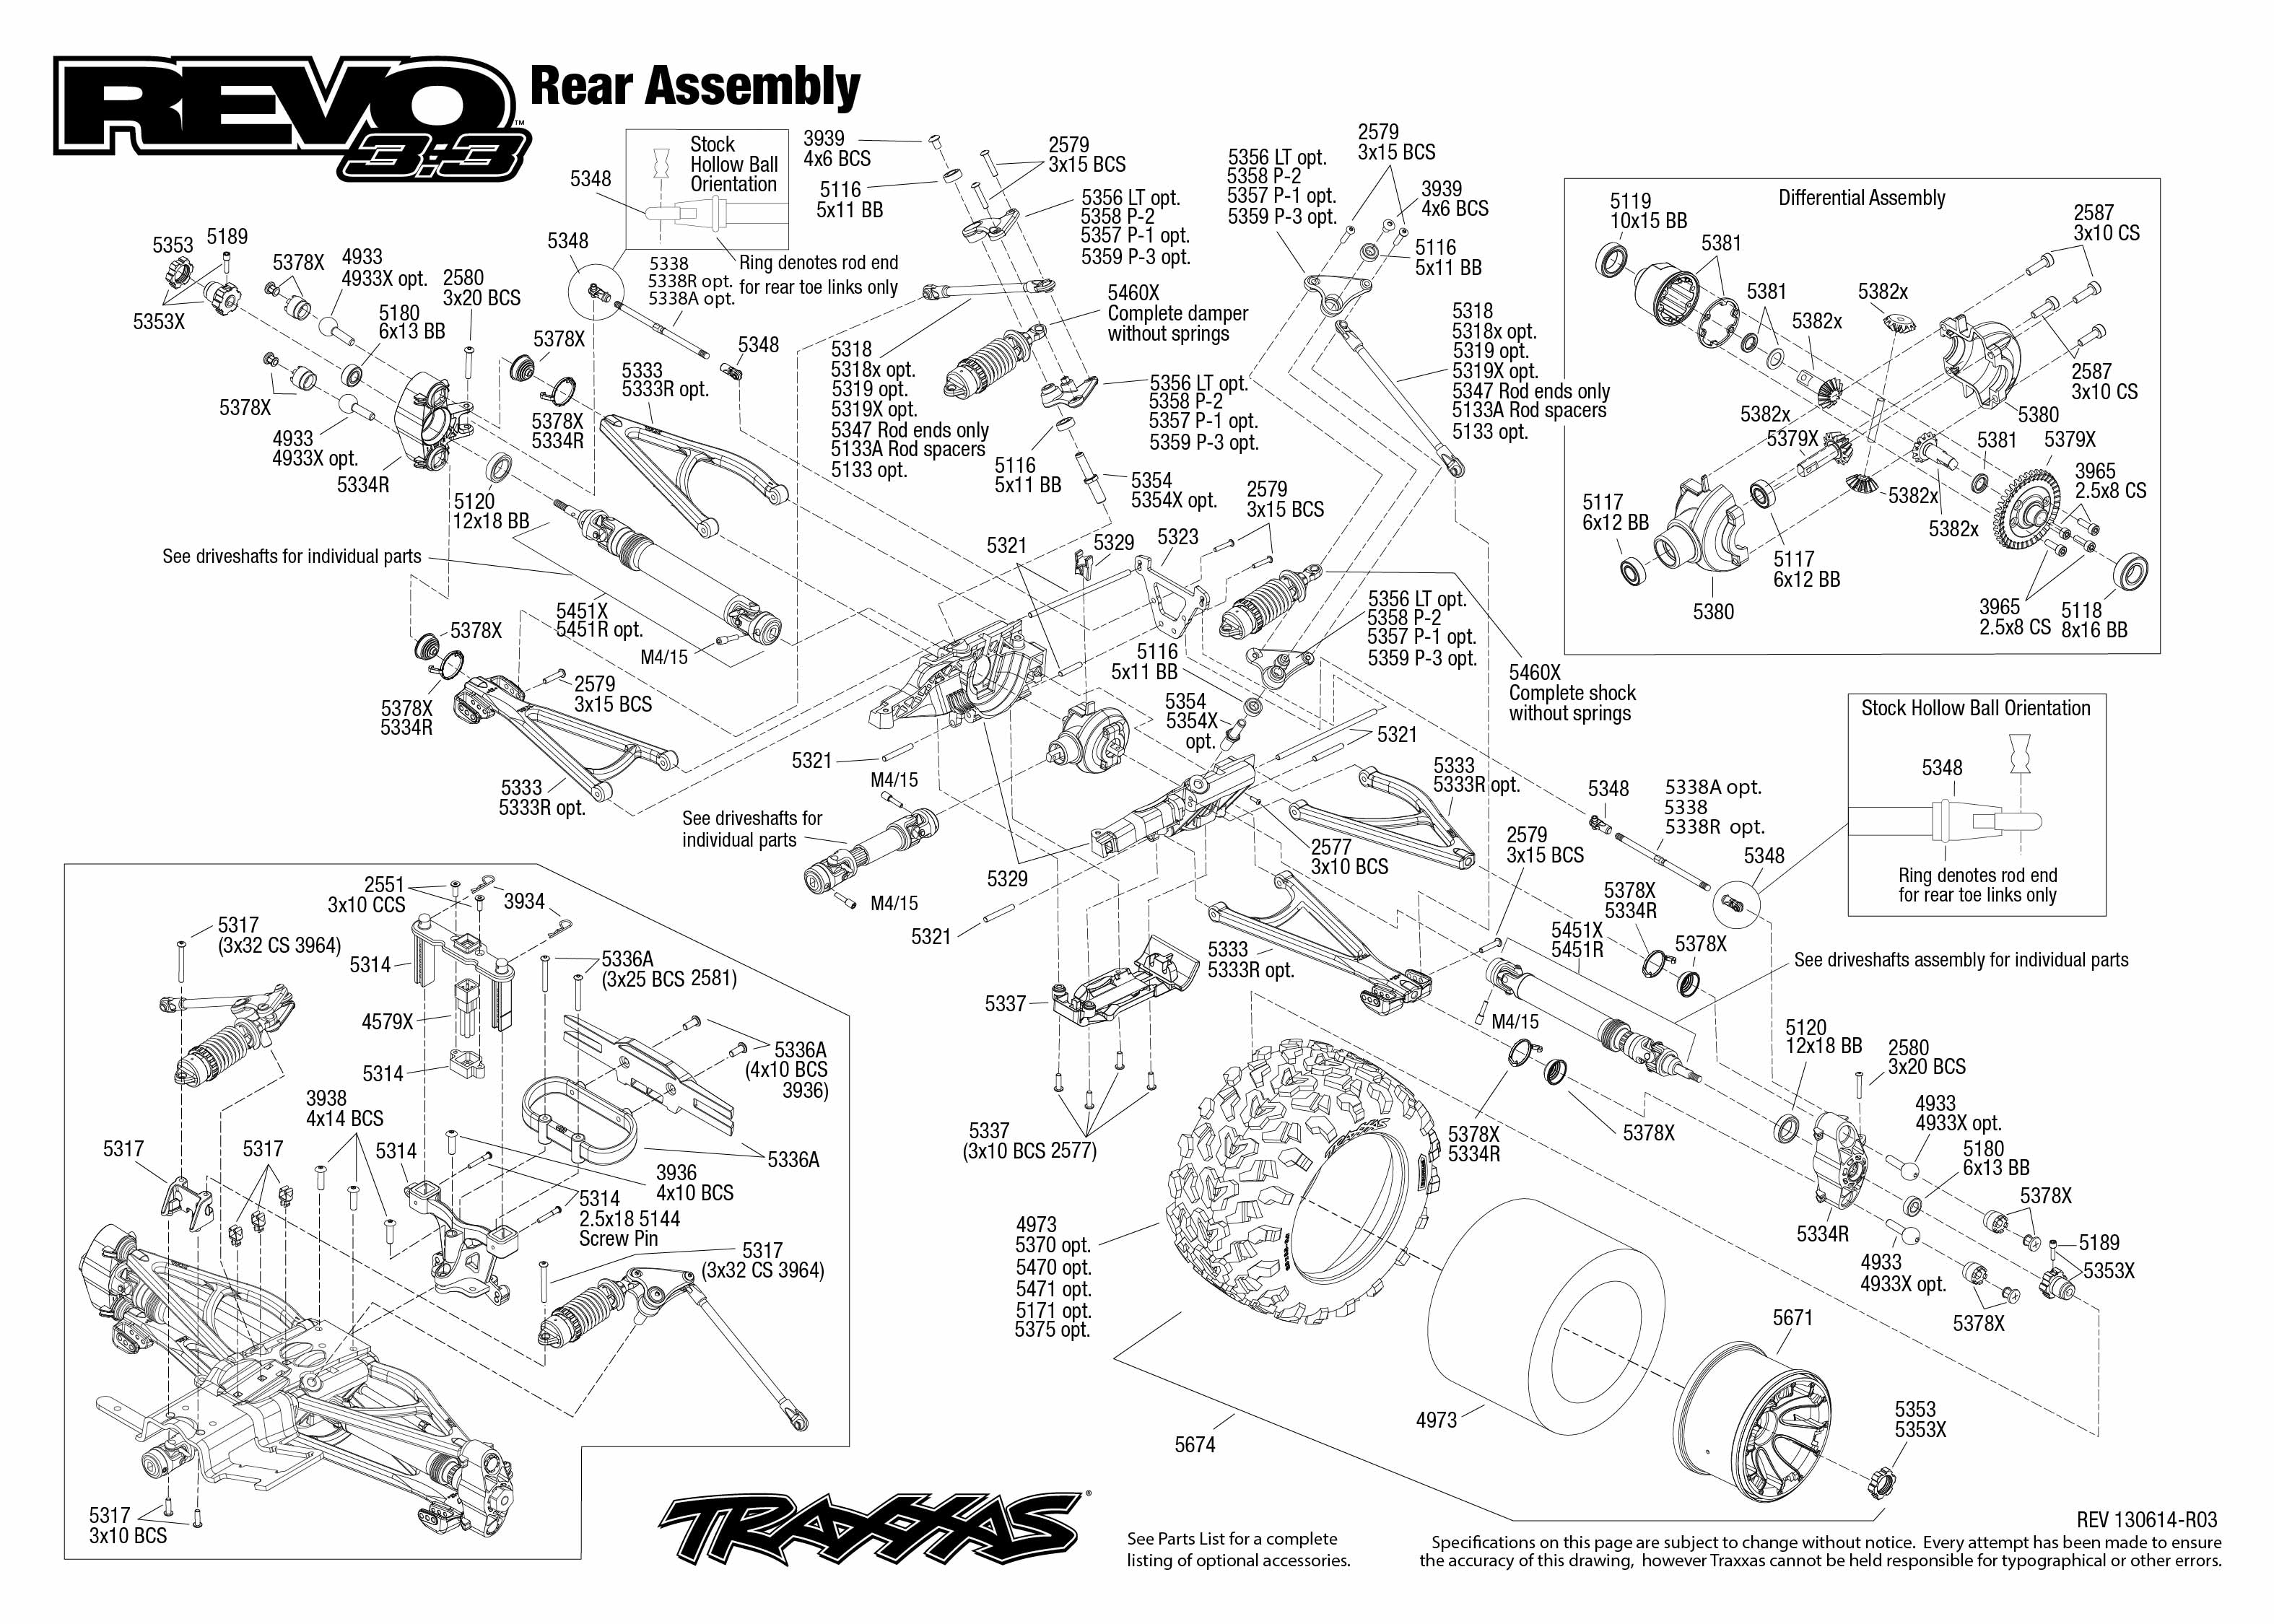 Daytime Running Light Module Location 2003 Ford Ranger together with 96 Suburban Fuse Box Diagram together with T12245281 Location fuel pump relay in chevy s10 additionally Discussion D467 ds685294 in addition Gas Meter Set Diagram. on honda fuel shut off solenoid